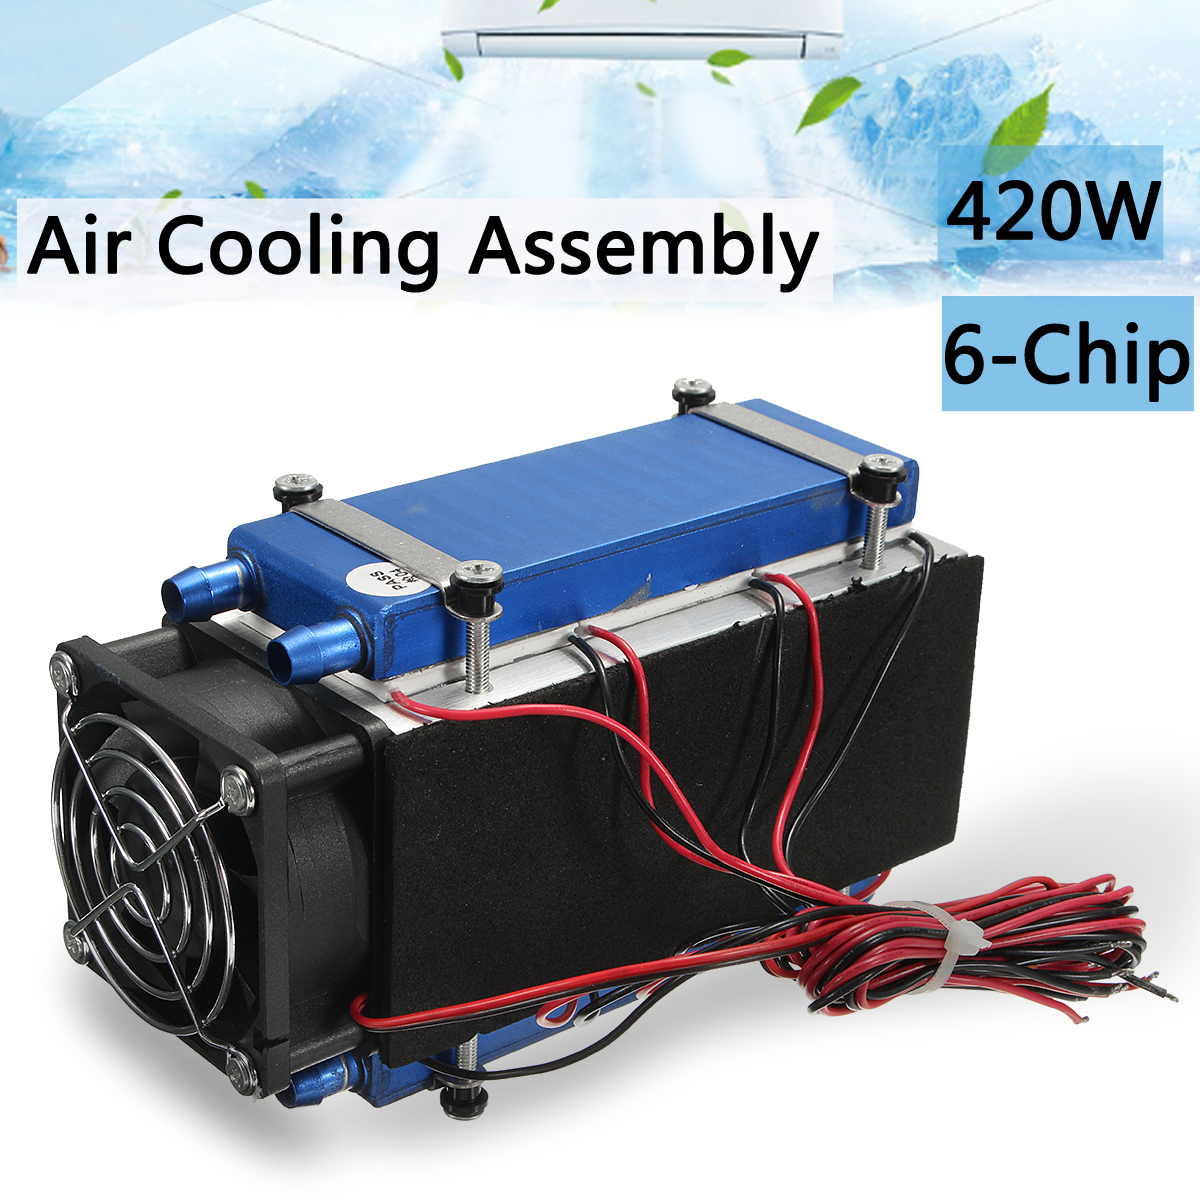 DIY 12V 420W 6-Chip Semiconductor Refrigeration Cooling Device Thermoelectric Cooler Air Conditioning High Cooling Efficiency c1204 4p1540 15 20 30 40mm 12v 4a 48w 4 layer semiconductor cooler 4 layer semiconductor subzero freezing thermoelectric cooler